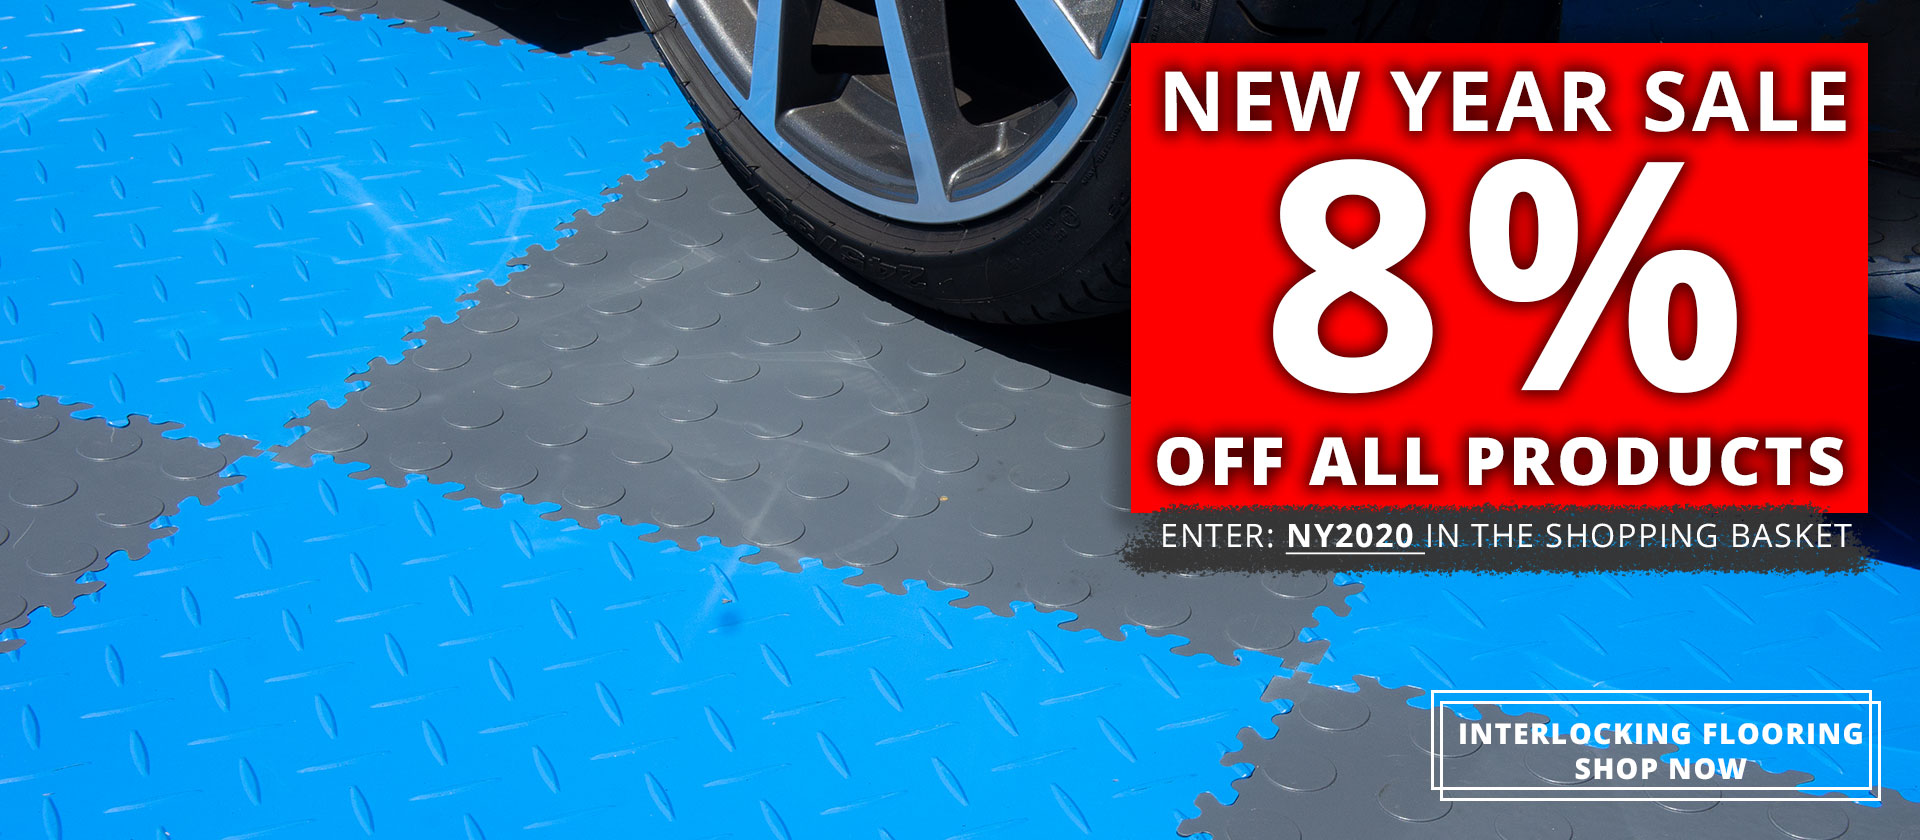 Mototile Interlocking Floor Tiles For Garages, Warehouses and more